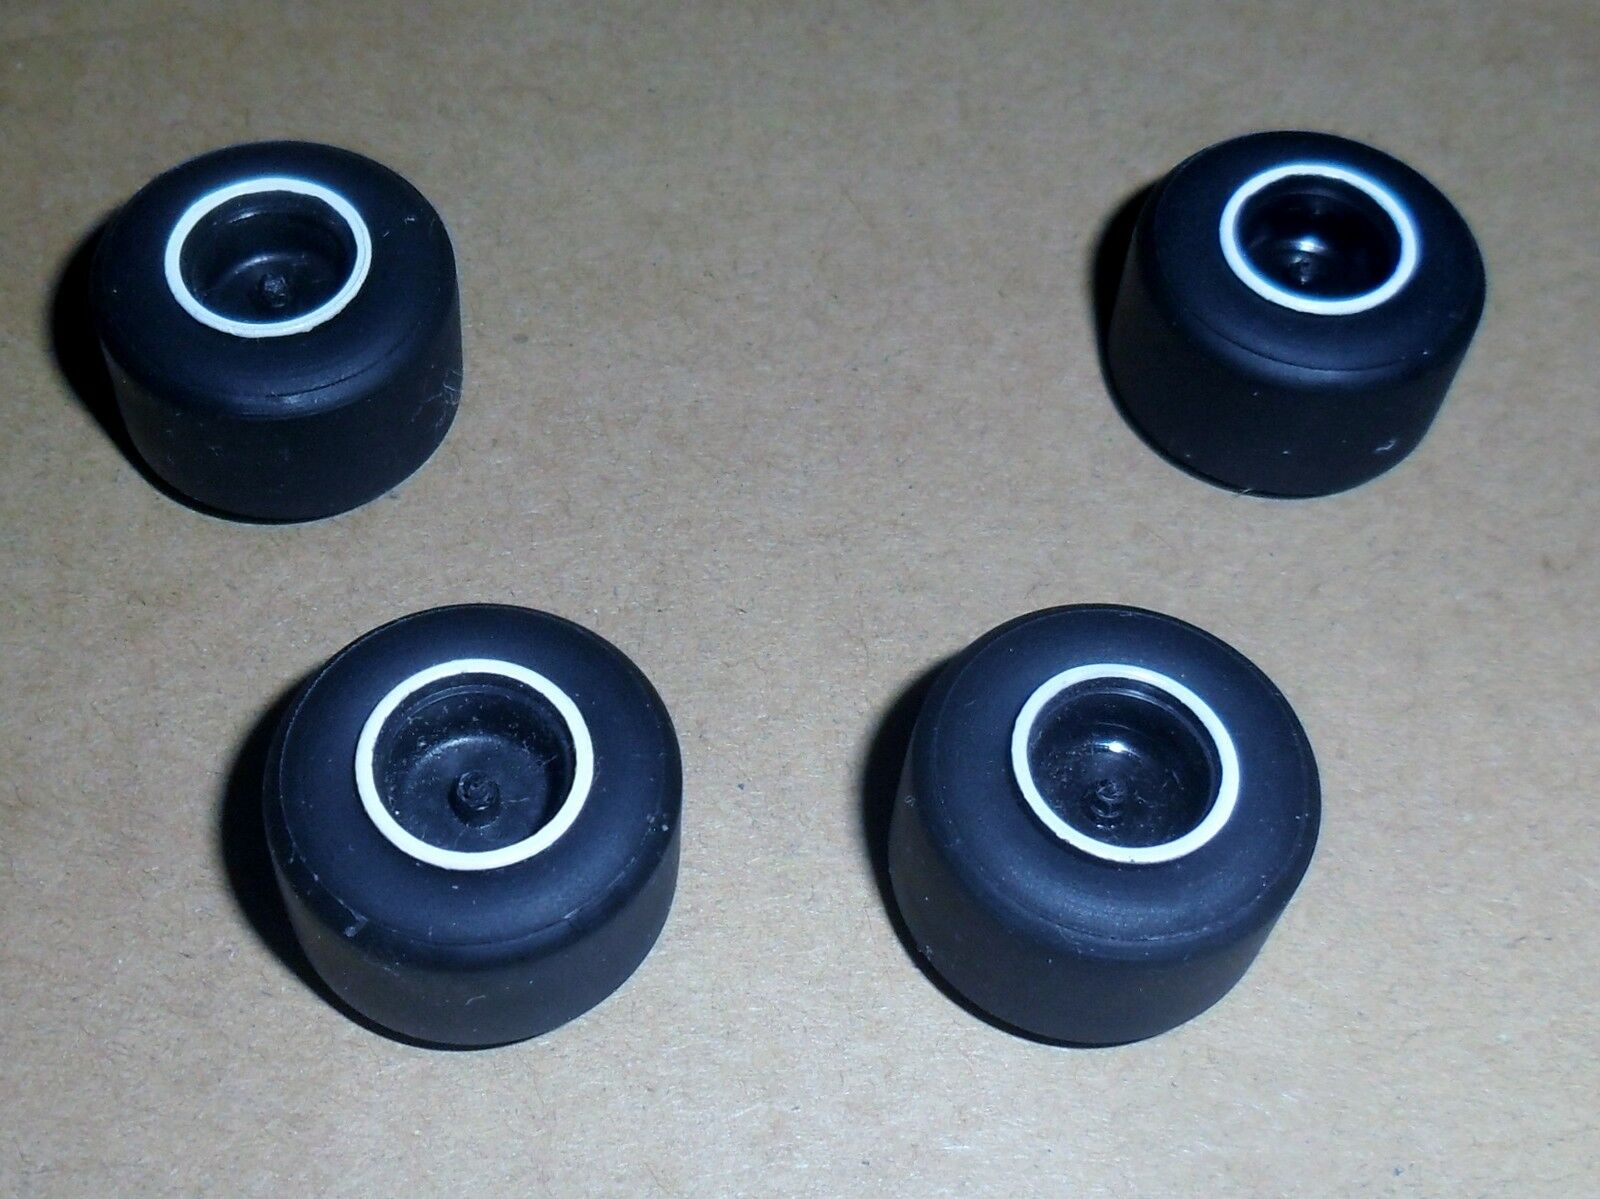 Scalextric Brand New Super Grip large Slick Voiture Pneus/pneus Pneus/pneus Pneus/pneus plus jantes Spares 103040